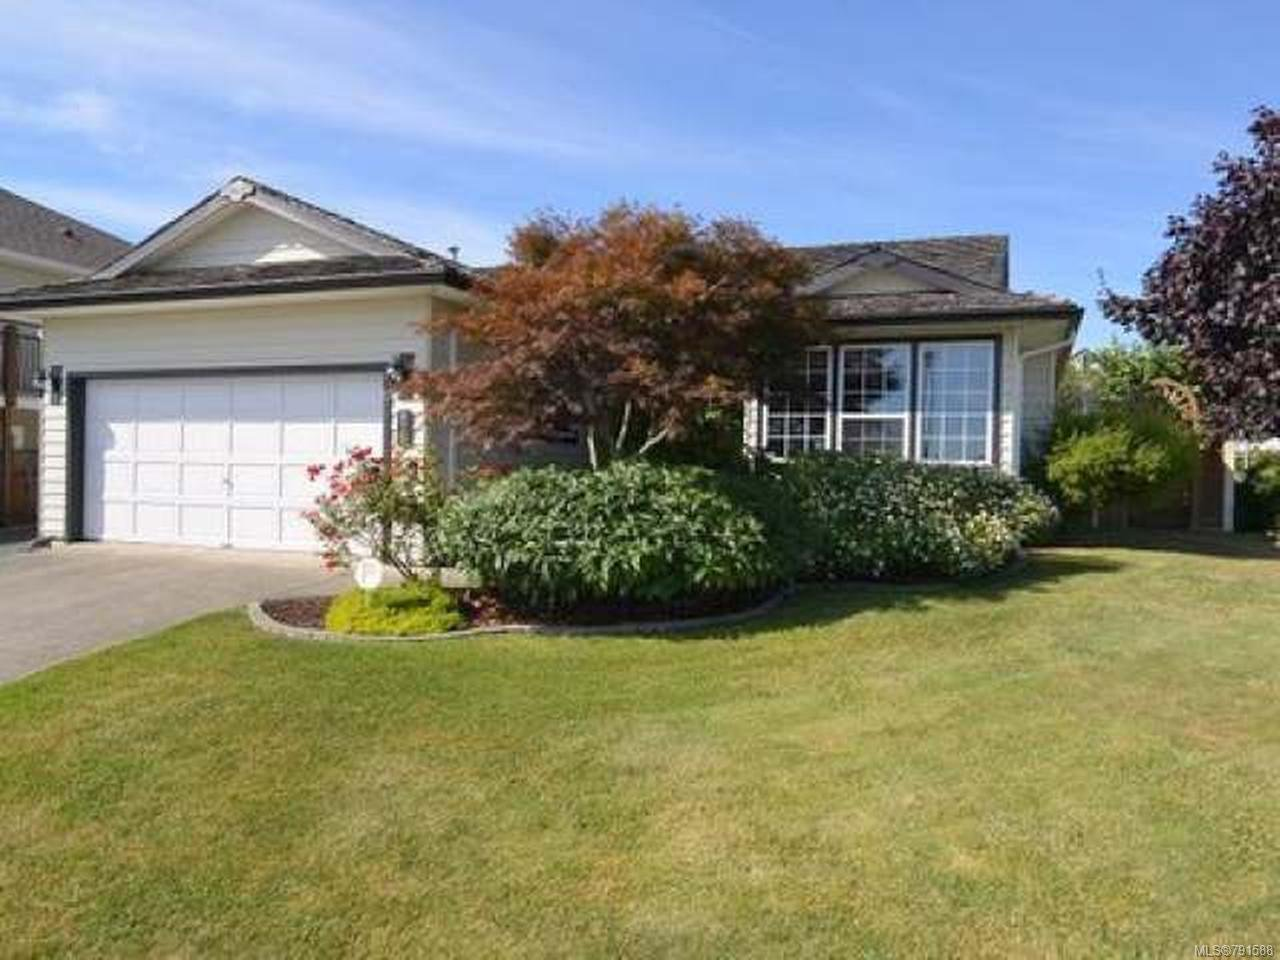 Main Photo: 675 HUDSON ROAD in CAMPBELL RIVER: CR Willow Point House for sale (Campbell River)  : MLS®# 791588